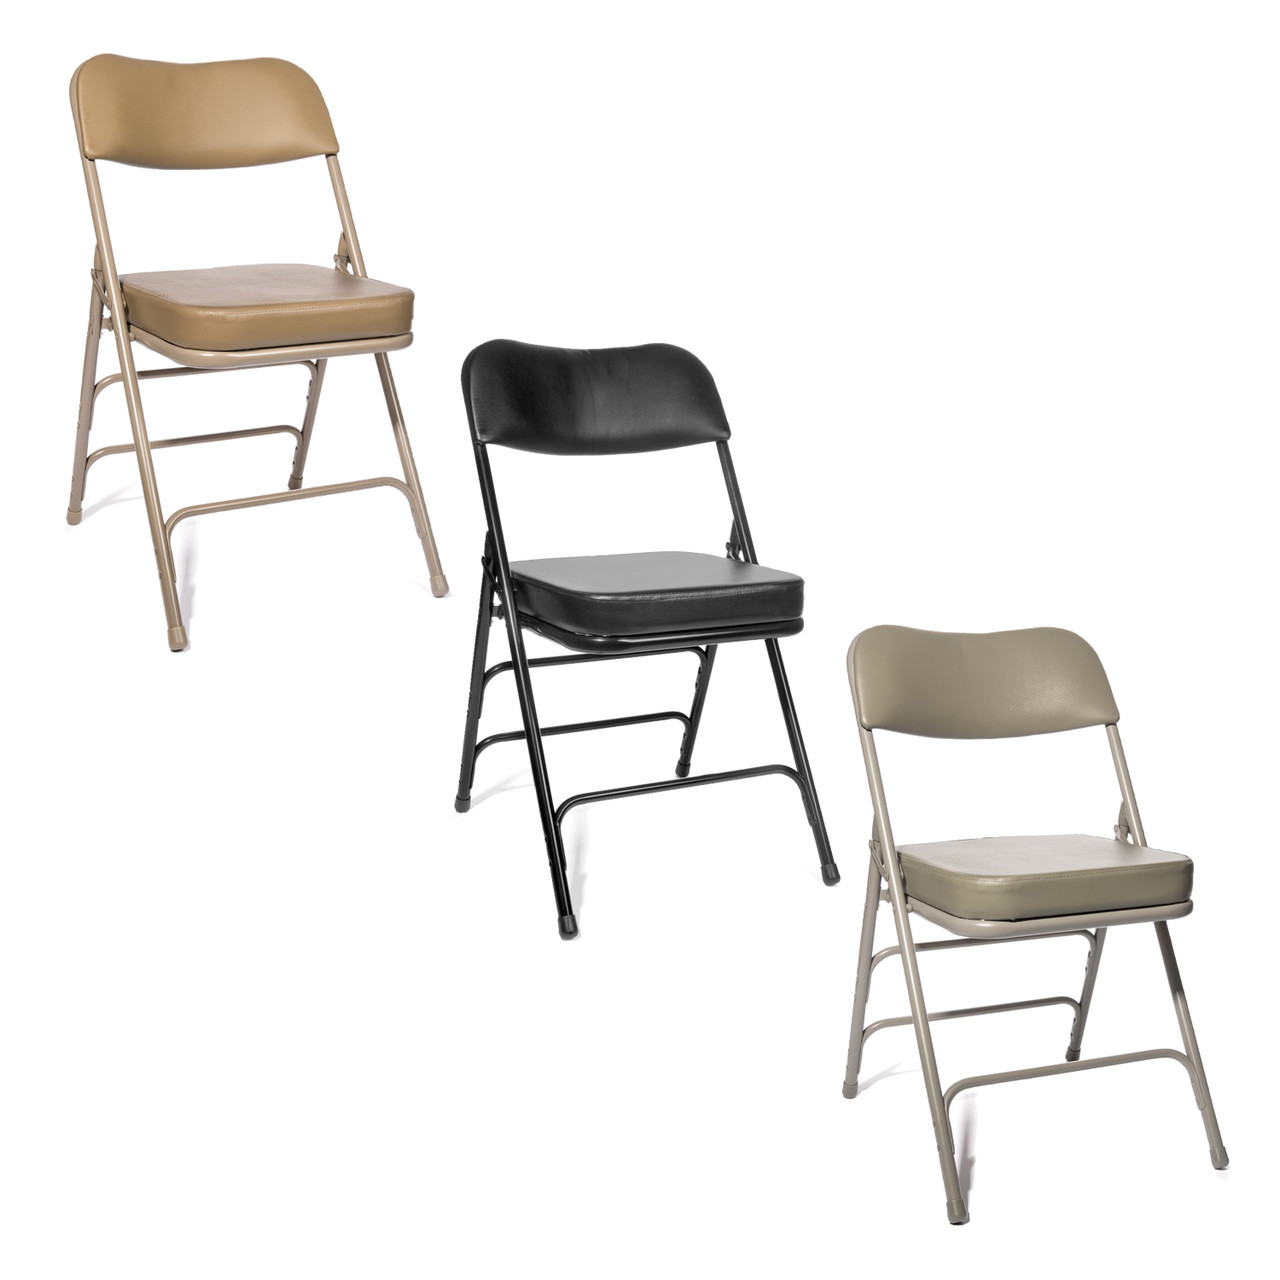 Chairs Folding Xl Series 2 Inch Vinyl Padded Folding Chair 2